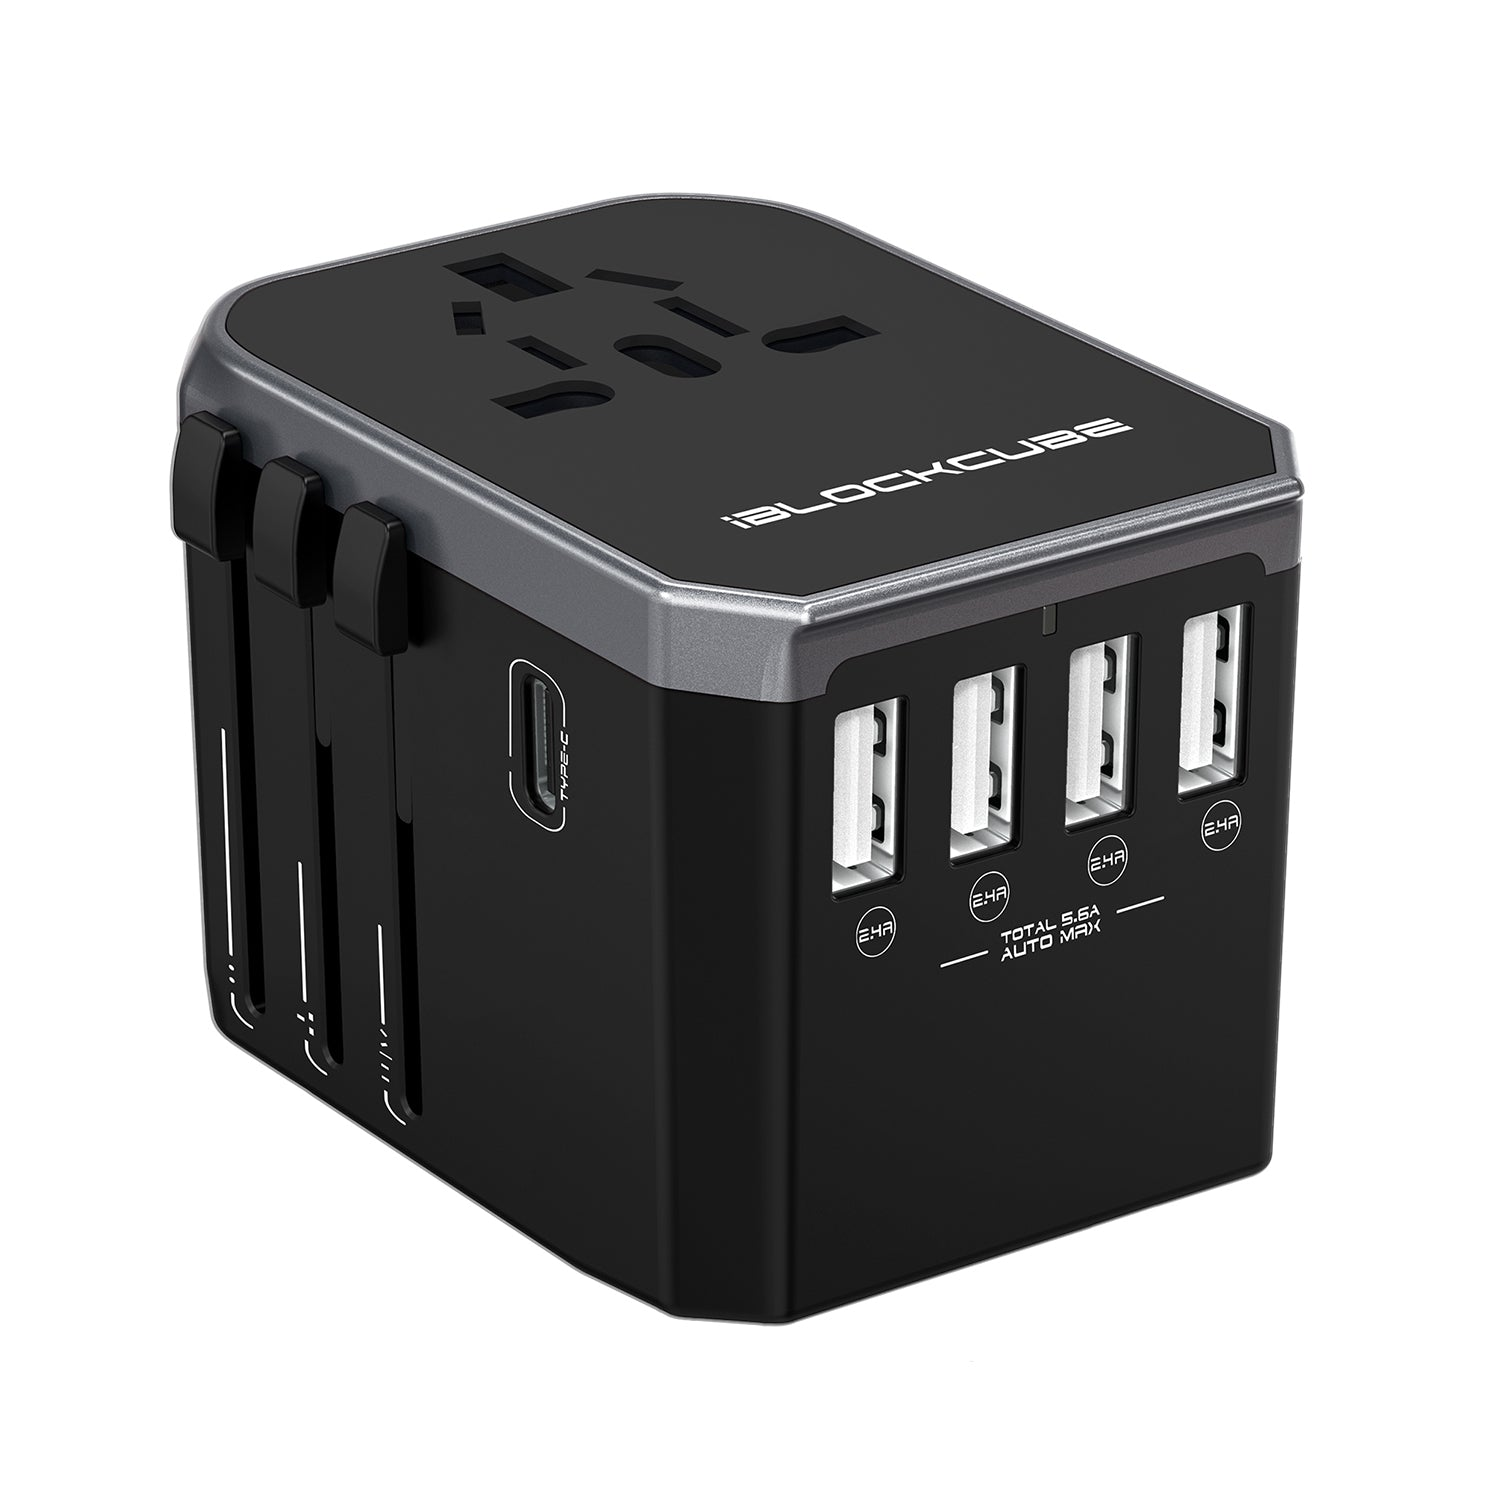 Bravado Booster Travel Adapter